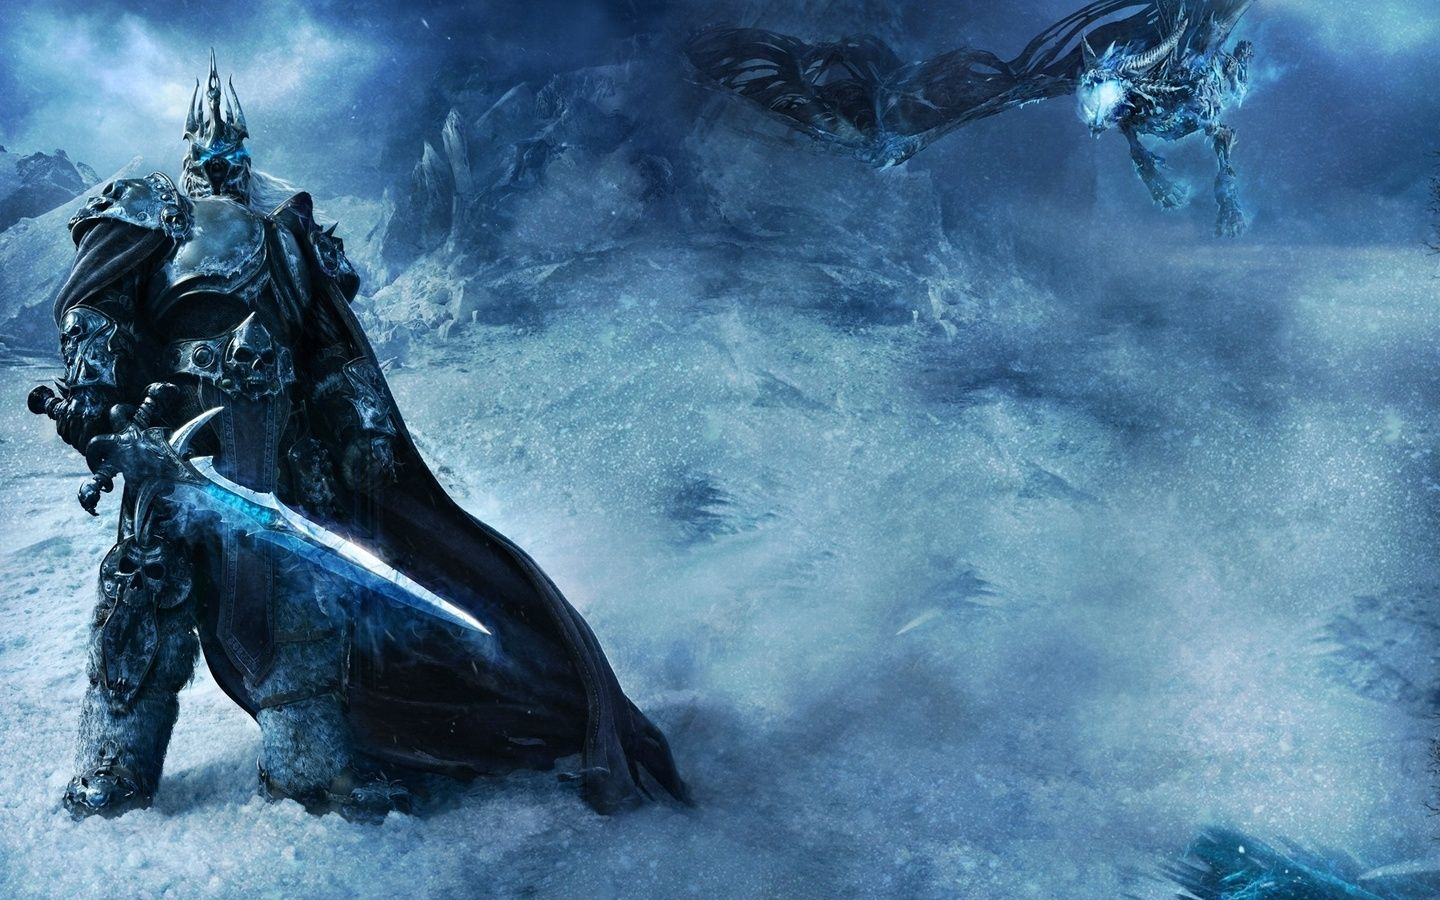 Once A Paladin Of The Silver Hand Arthas Feel Into Madness After He Took His Fight Against Undead Scourge